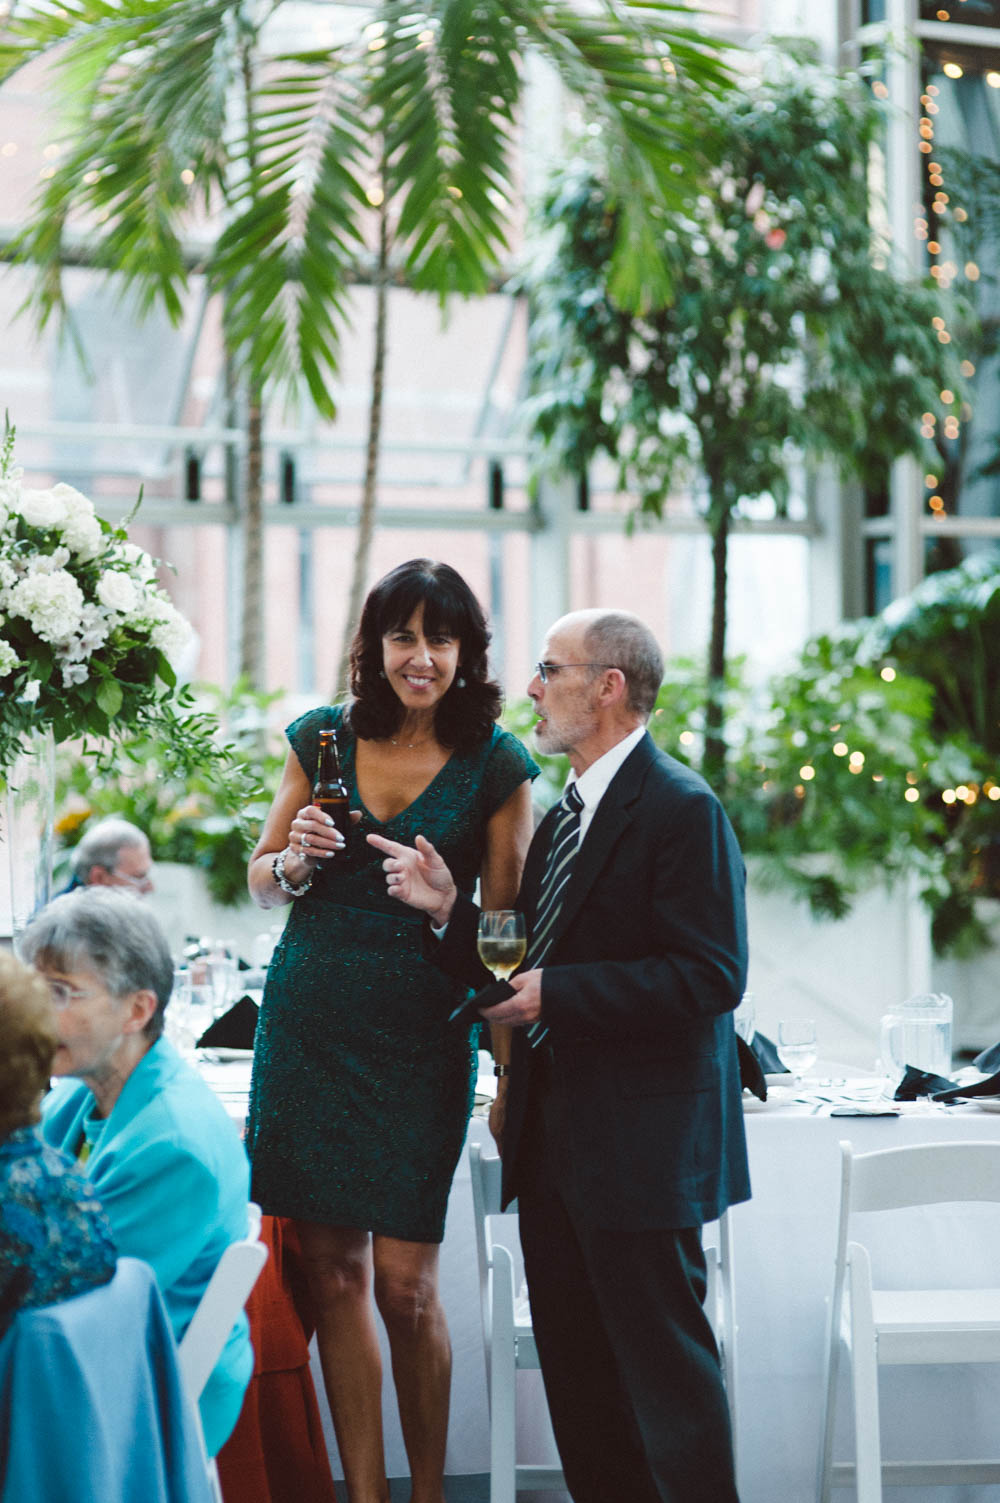 wintergarden-wedding-pittsburgh-112.jpg